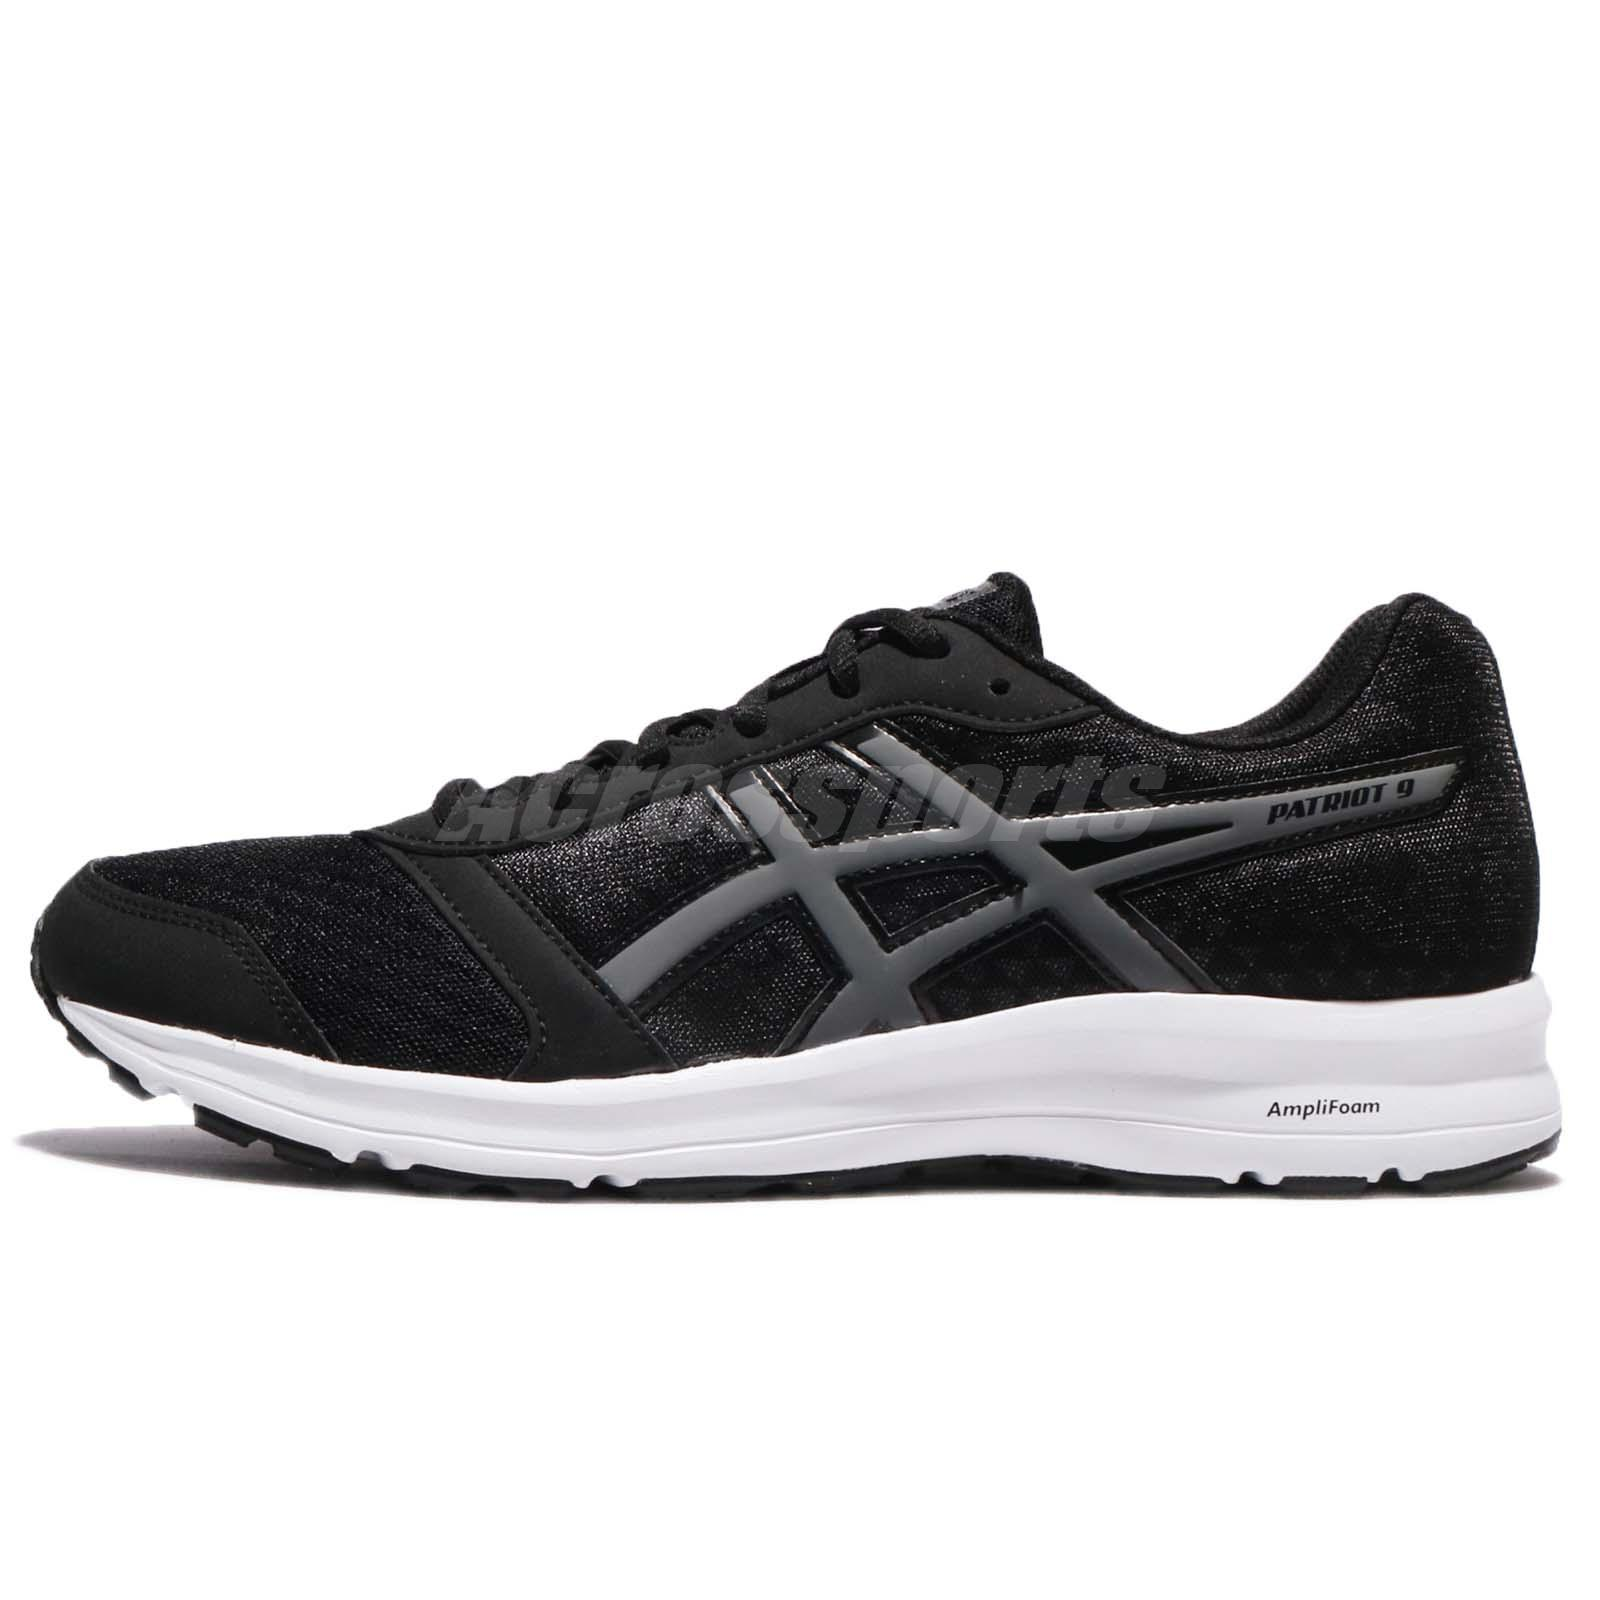 Asics Patriot 9 Black Carbon White Men Running Shoes Sneaker Trainers T823N 9097